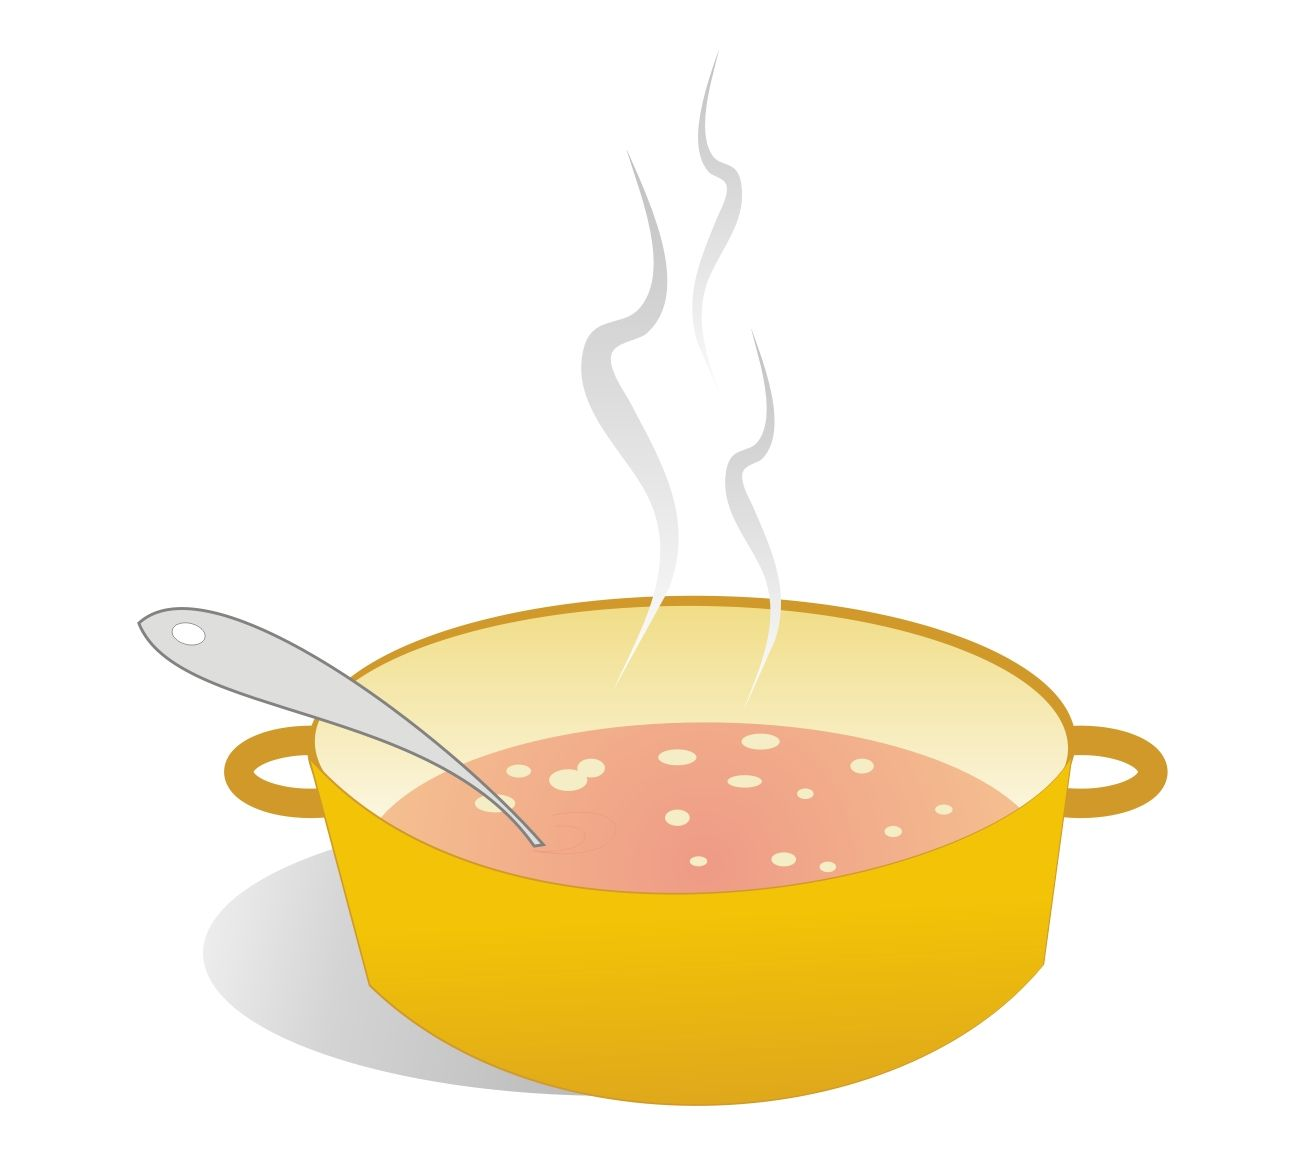 Clipart hot soup vector freeuse download Free Warm Soup Cliparts, Download Free Clip Art, Free Clip Art on ... vector freeuse download